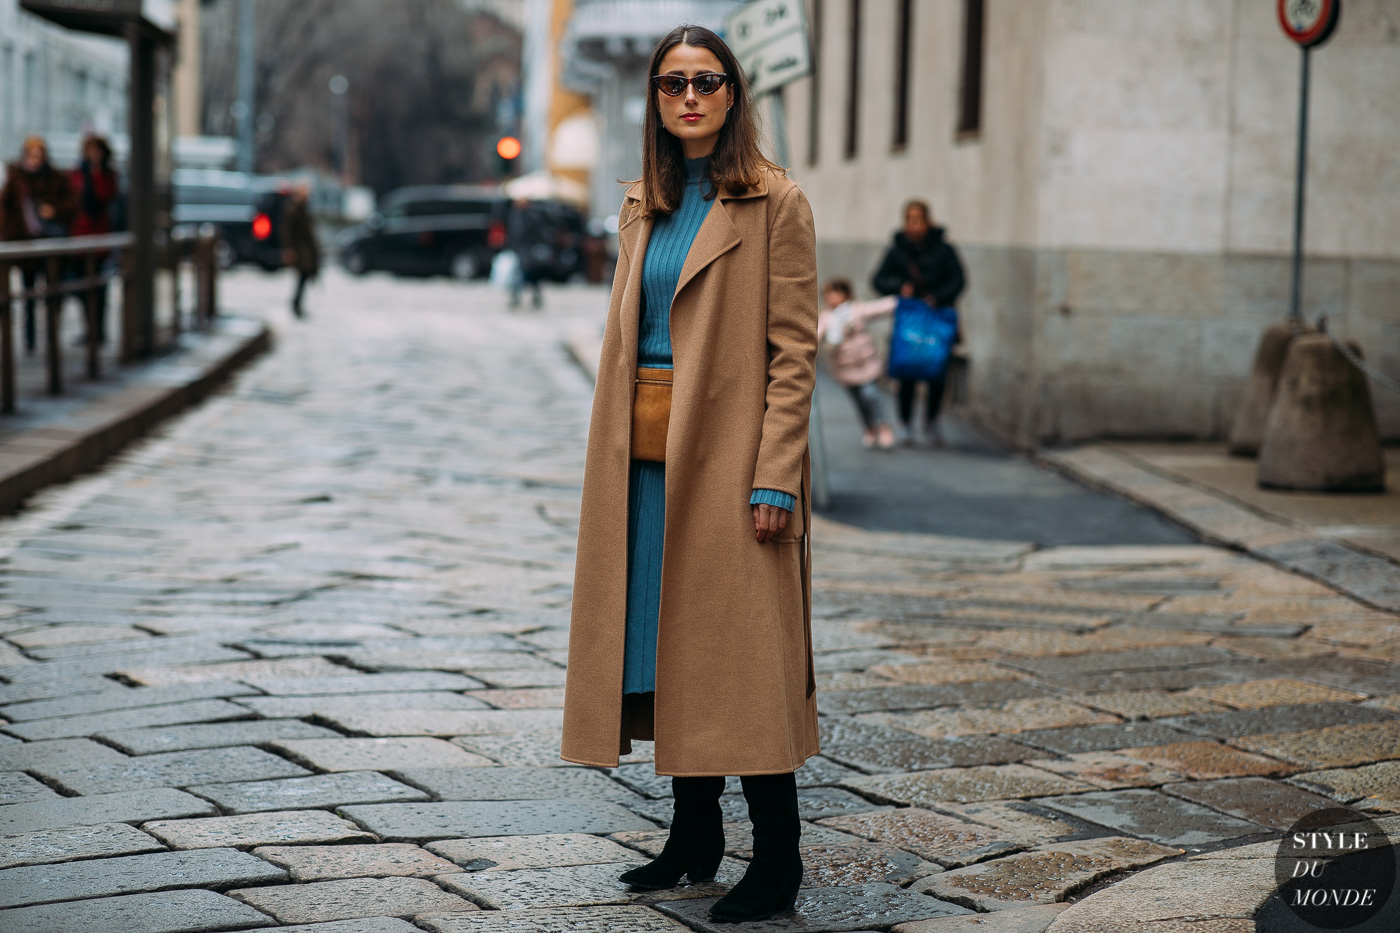 Julia Haghjoo by STYLEDUMONDE Street Style Fashion Photography FW18 20180223_48A6732